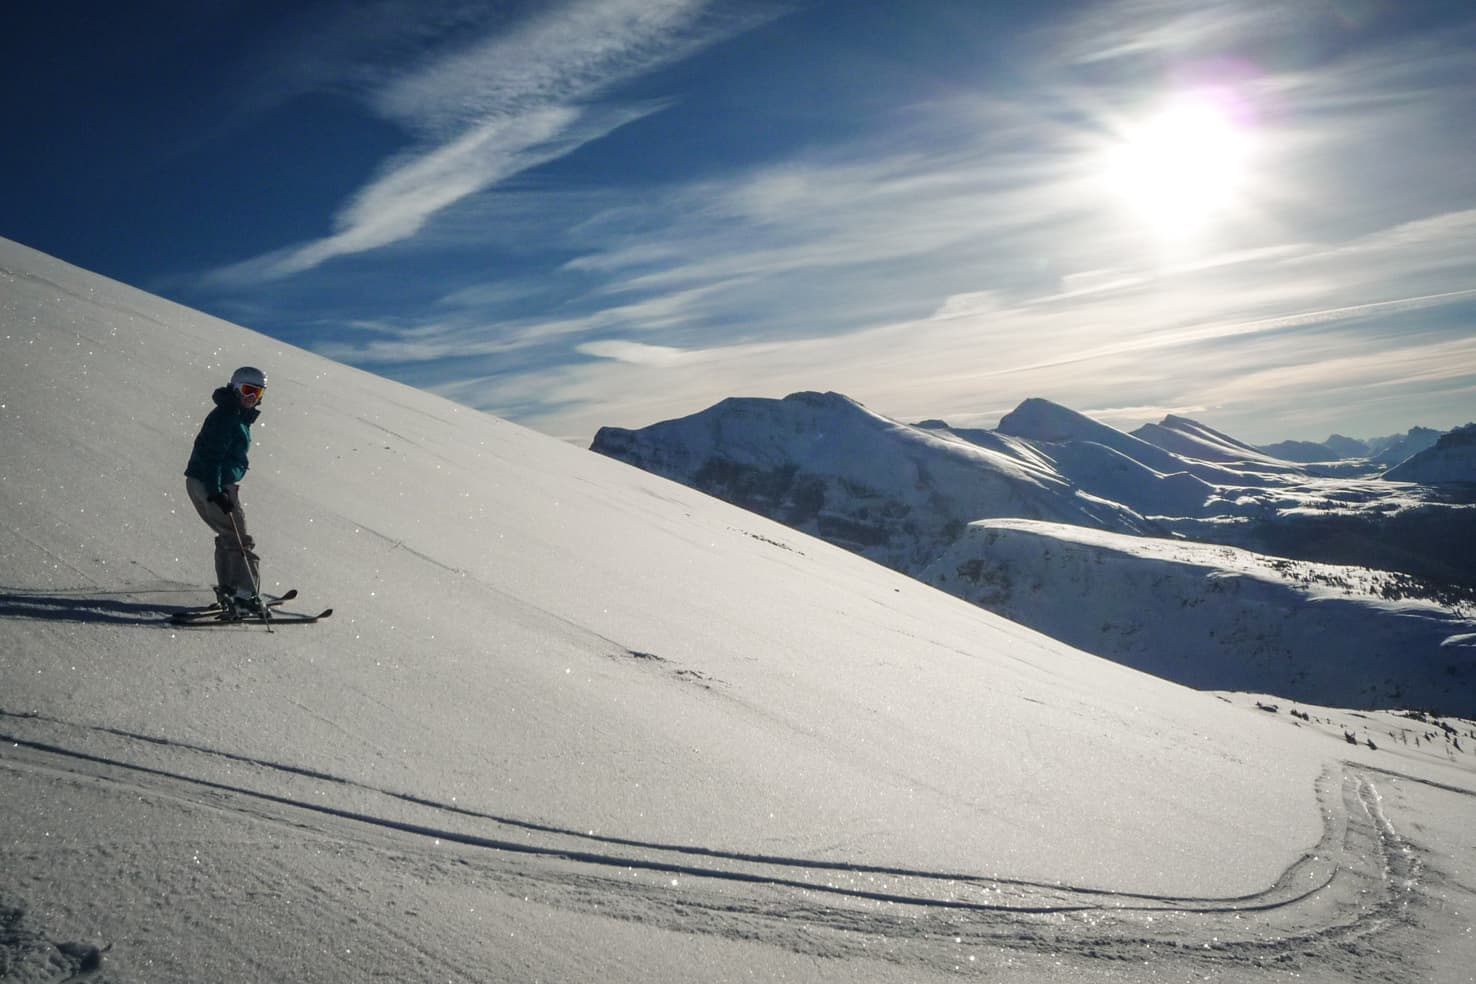 Things to do in Jasper National Park - 50 Shred some powder at Marmot Basin